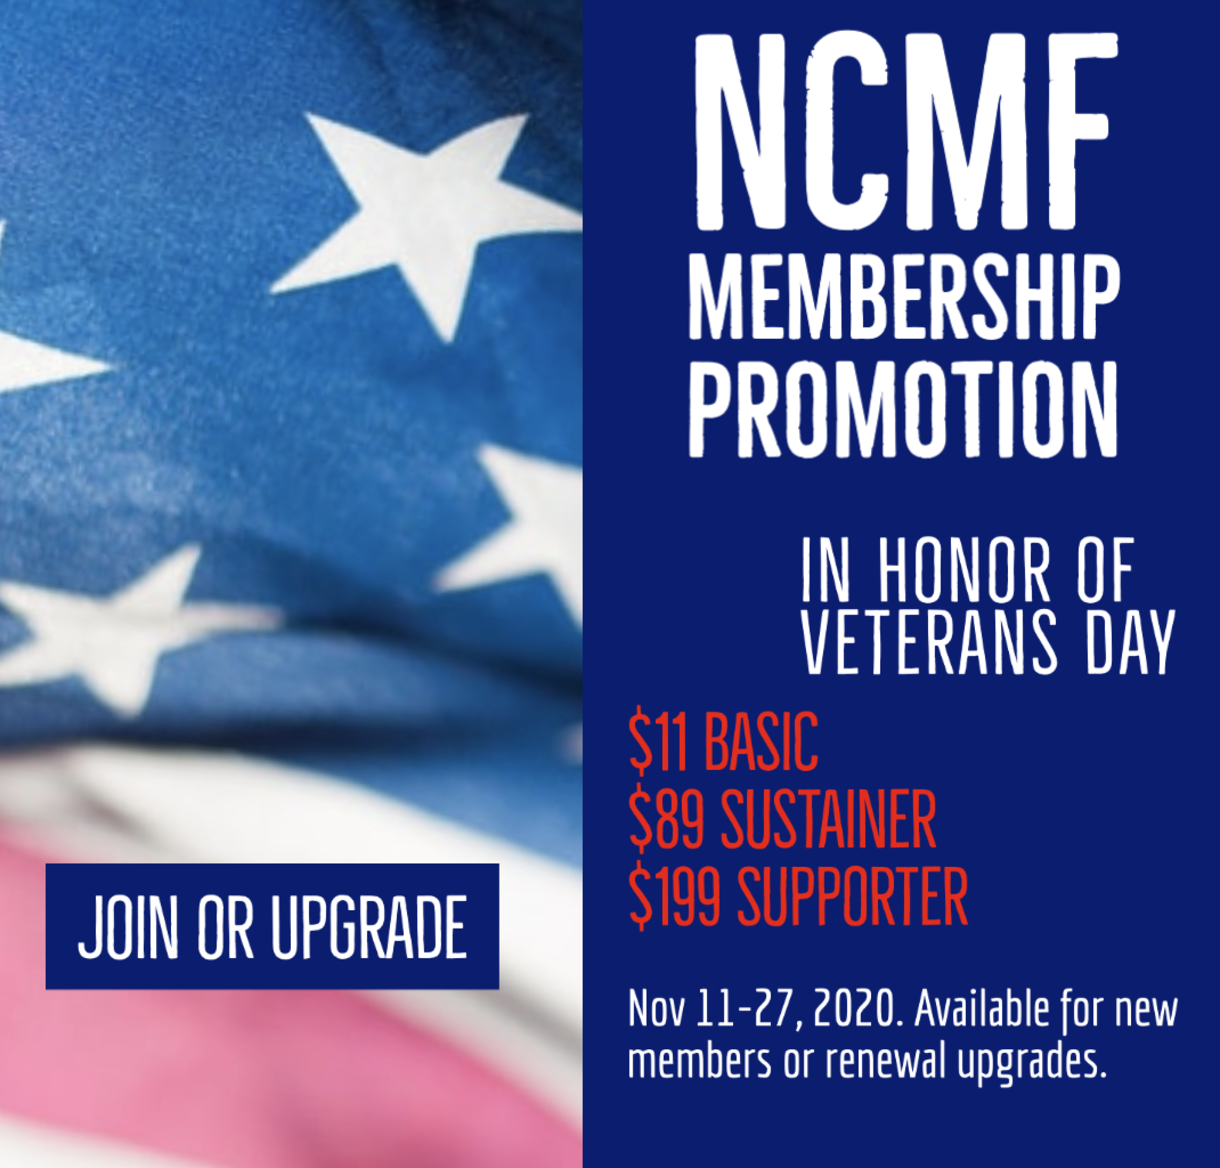 In honor of Veterans Day - take advantage of a special membership promotional offer from Nov. 11-27. Available for new members and for renewal upgrades.